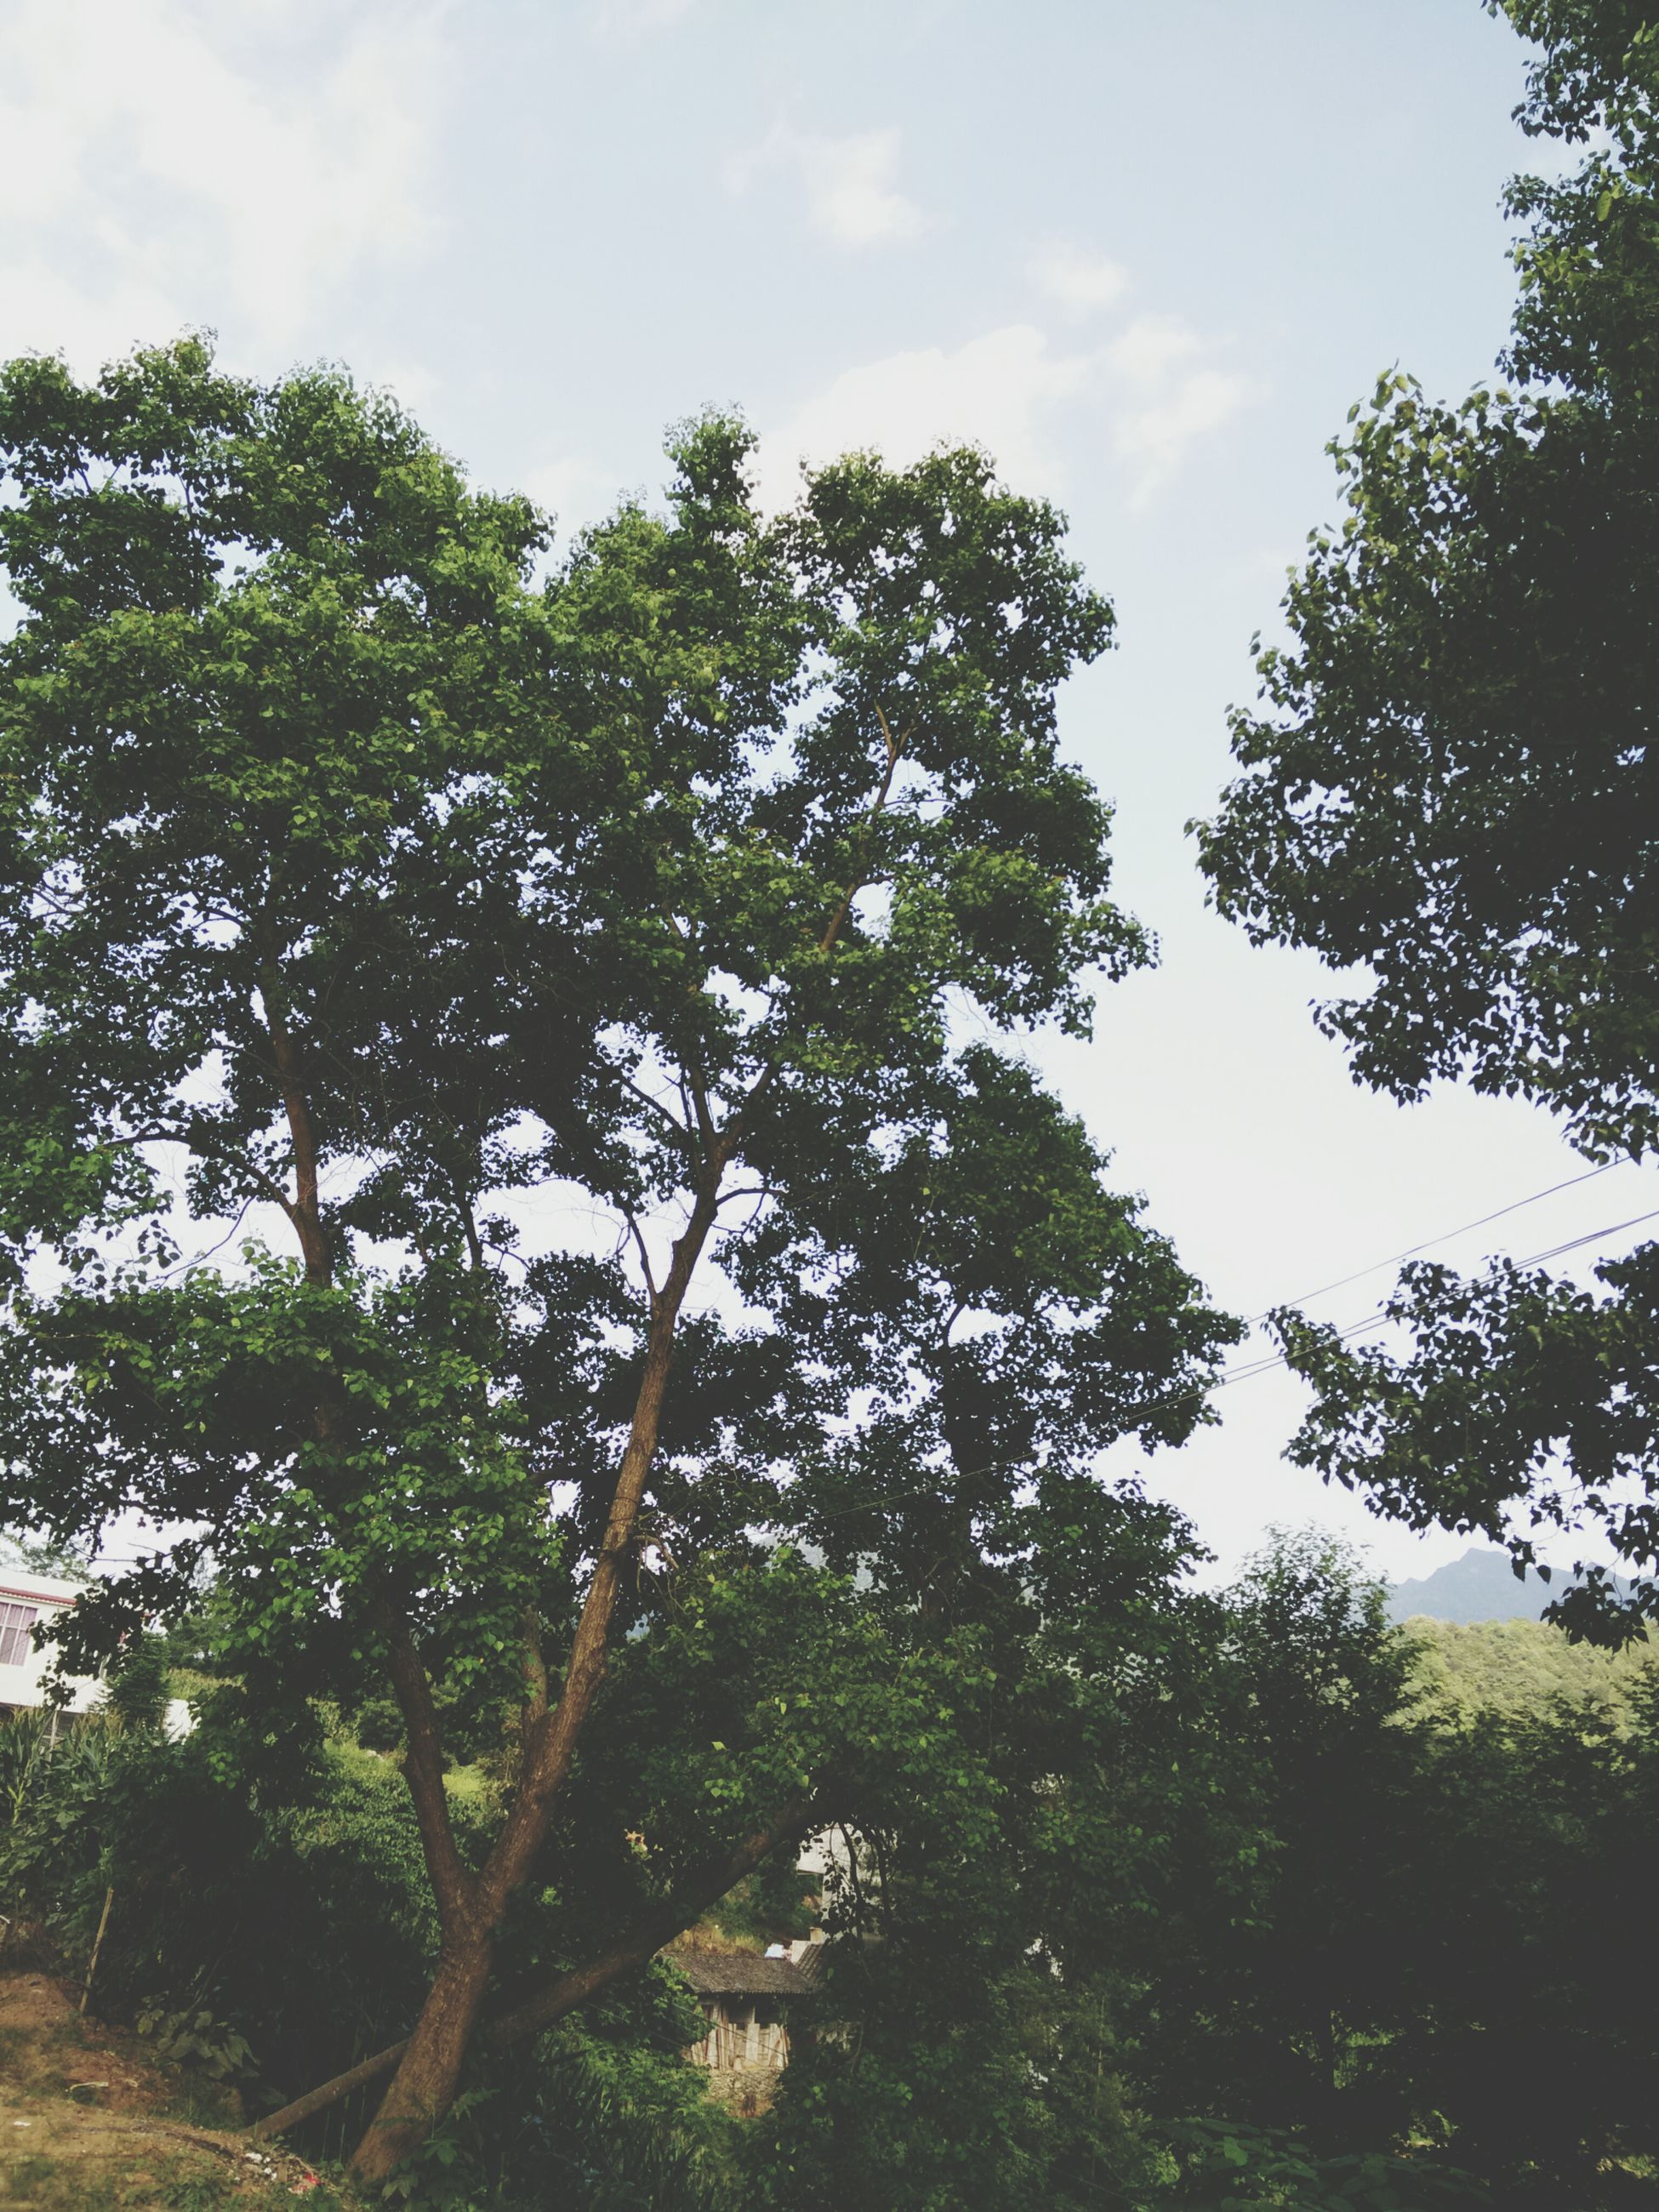 tree, growth, sky, tranquility, tranquil scene, green color, nature, beauty in nature, branch, low angle view, scenics, cloud - sky, forest, lush foliage, day, non-urban scene, outdoors, landscape, no people, cloud